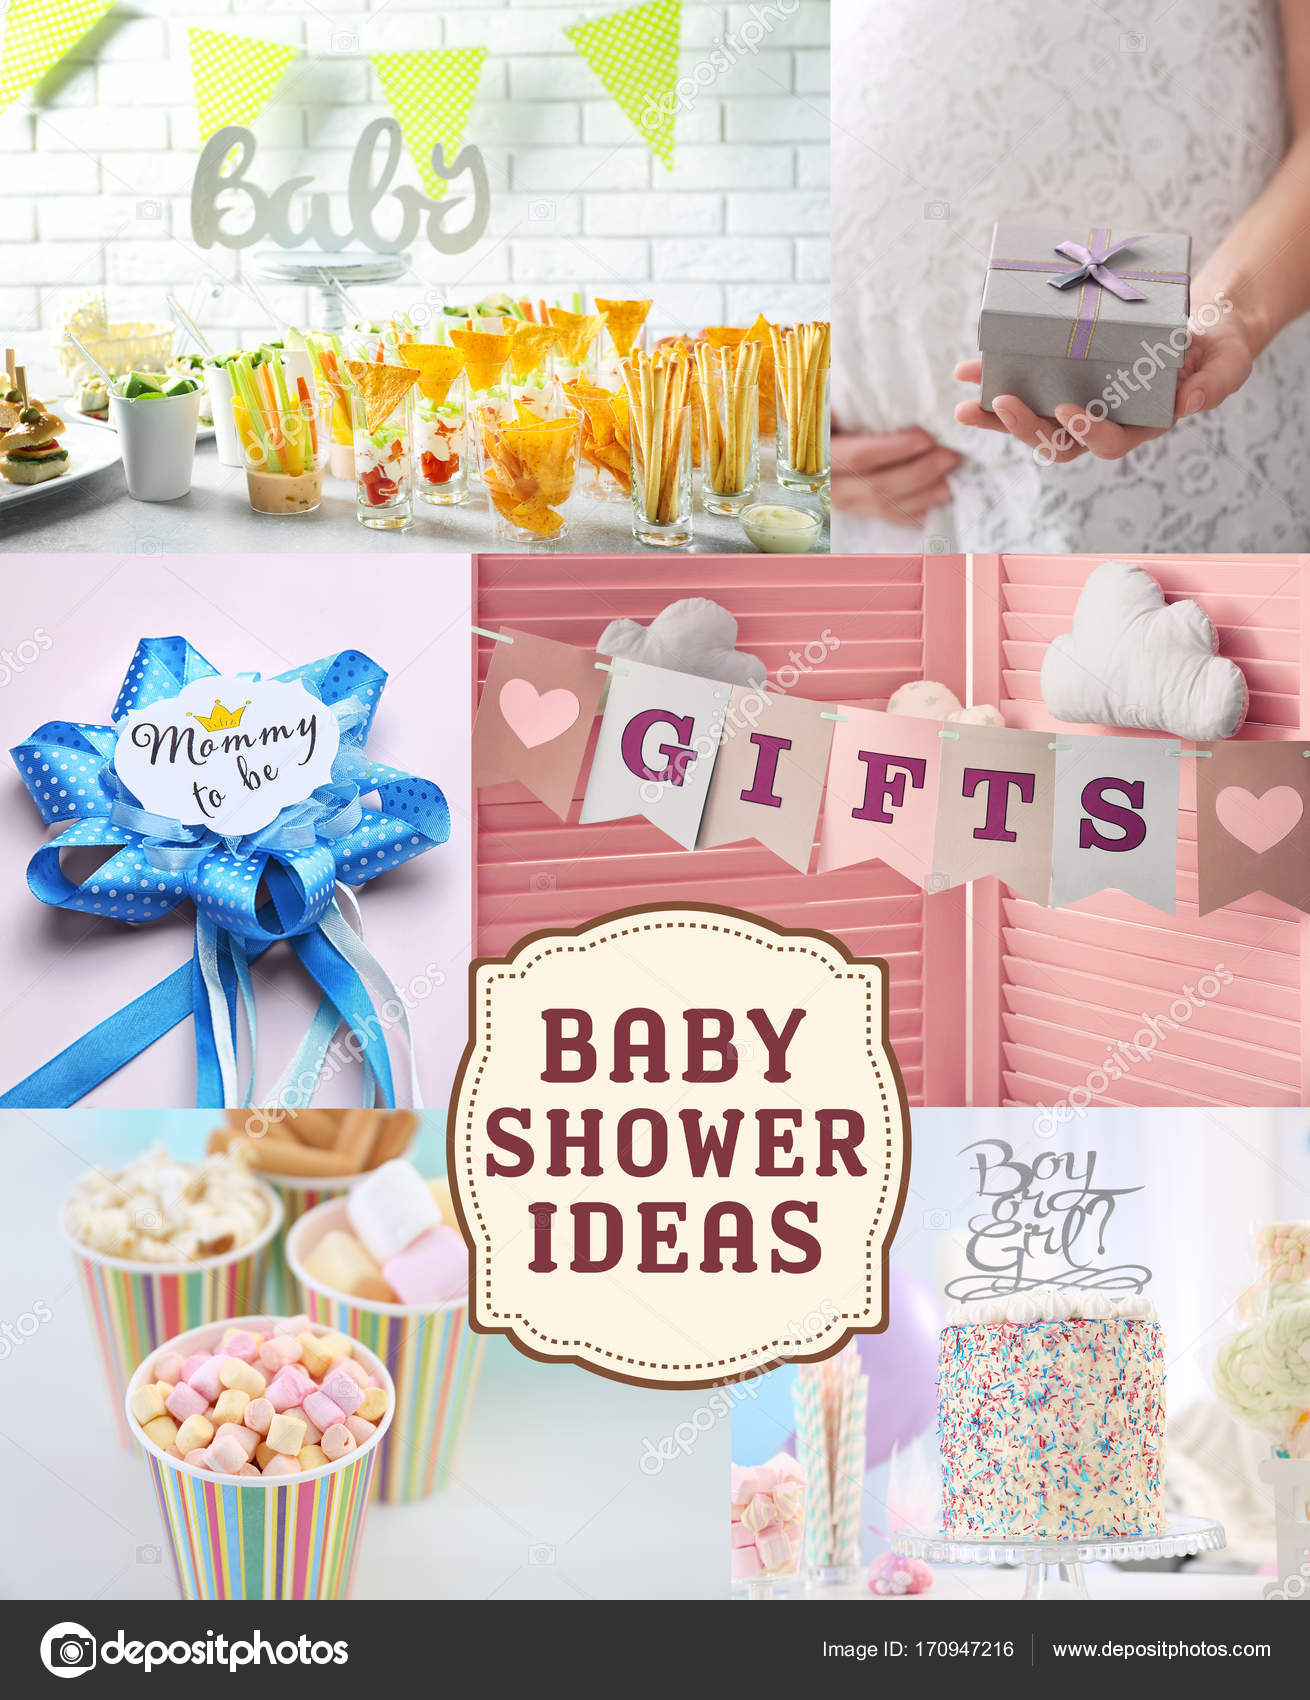 Collagen Ideen Collage Mit Ideen Für Baby Shower Party Stockfoto Belchonock